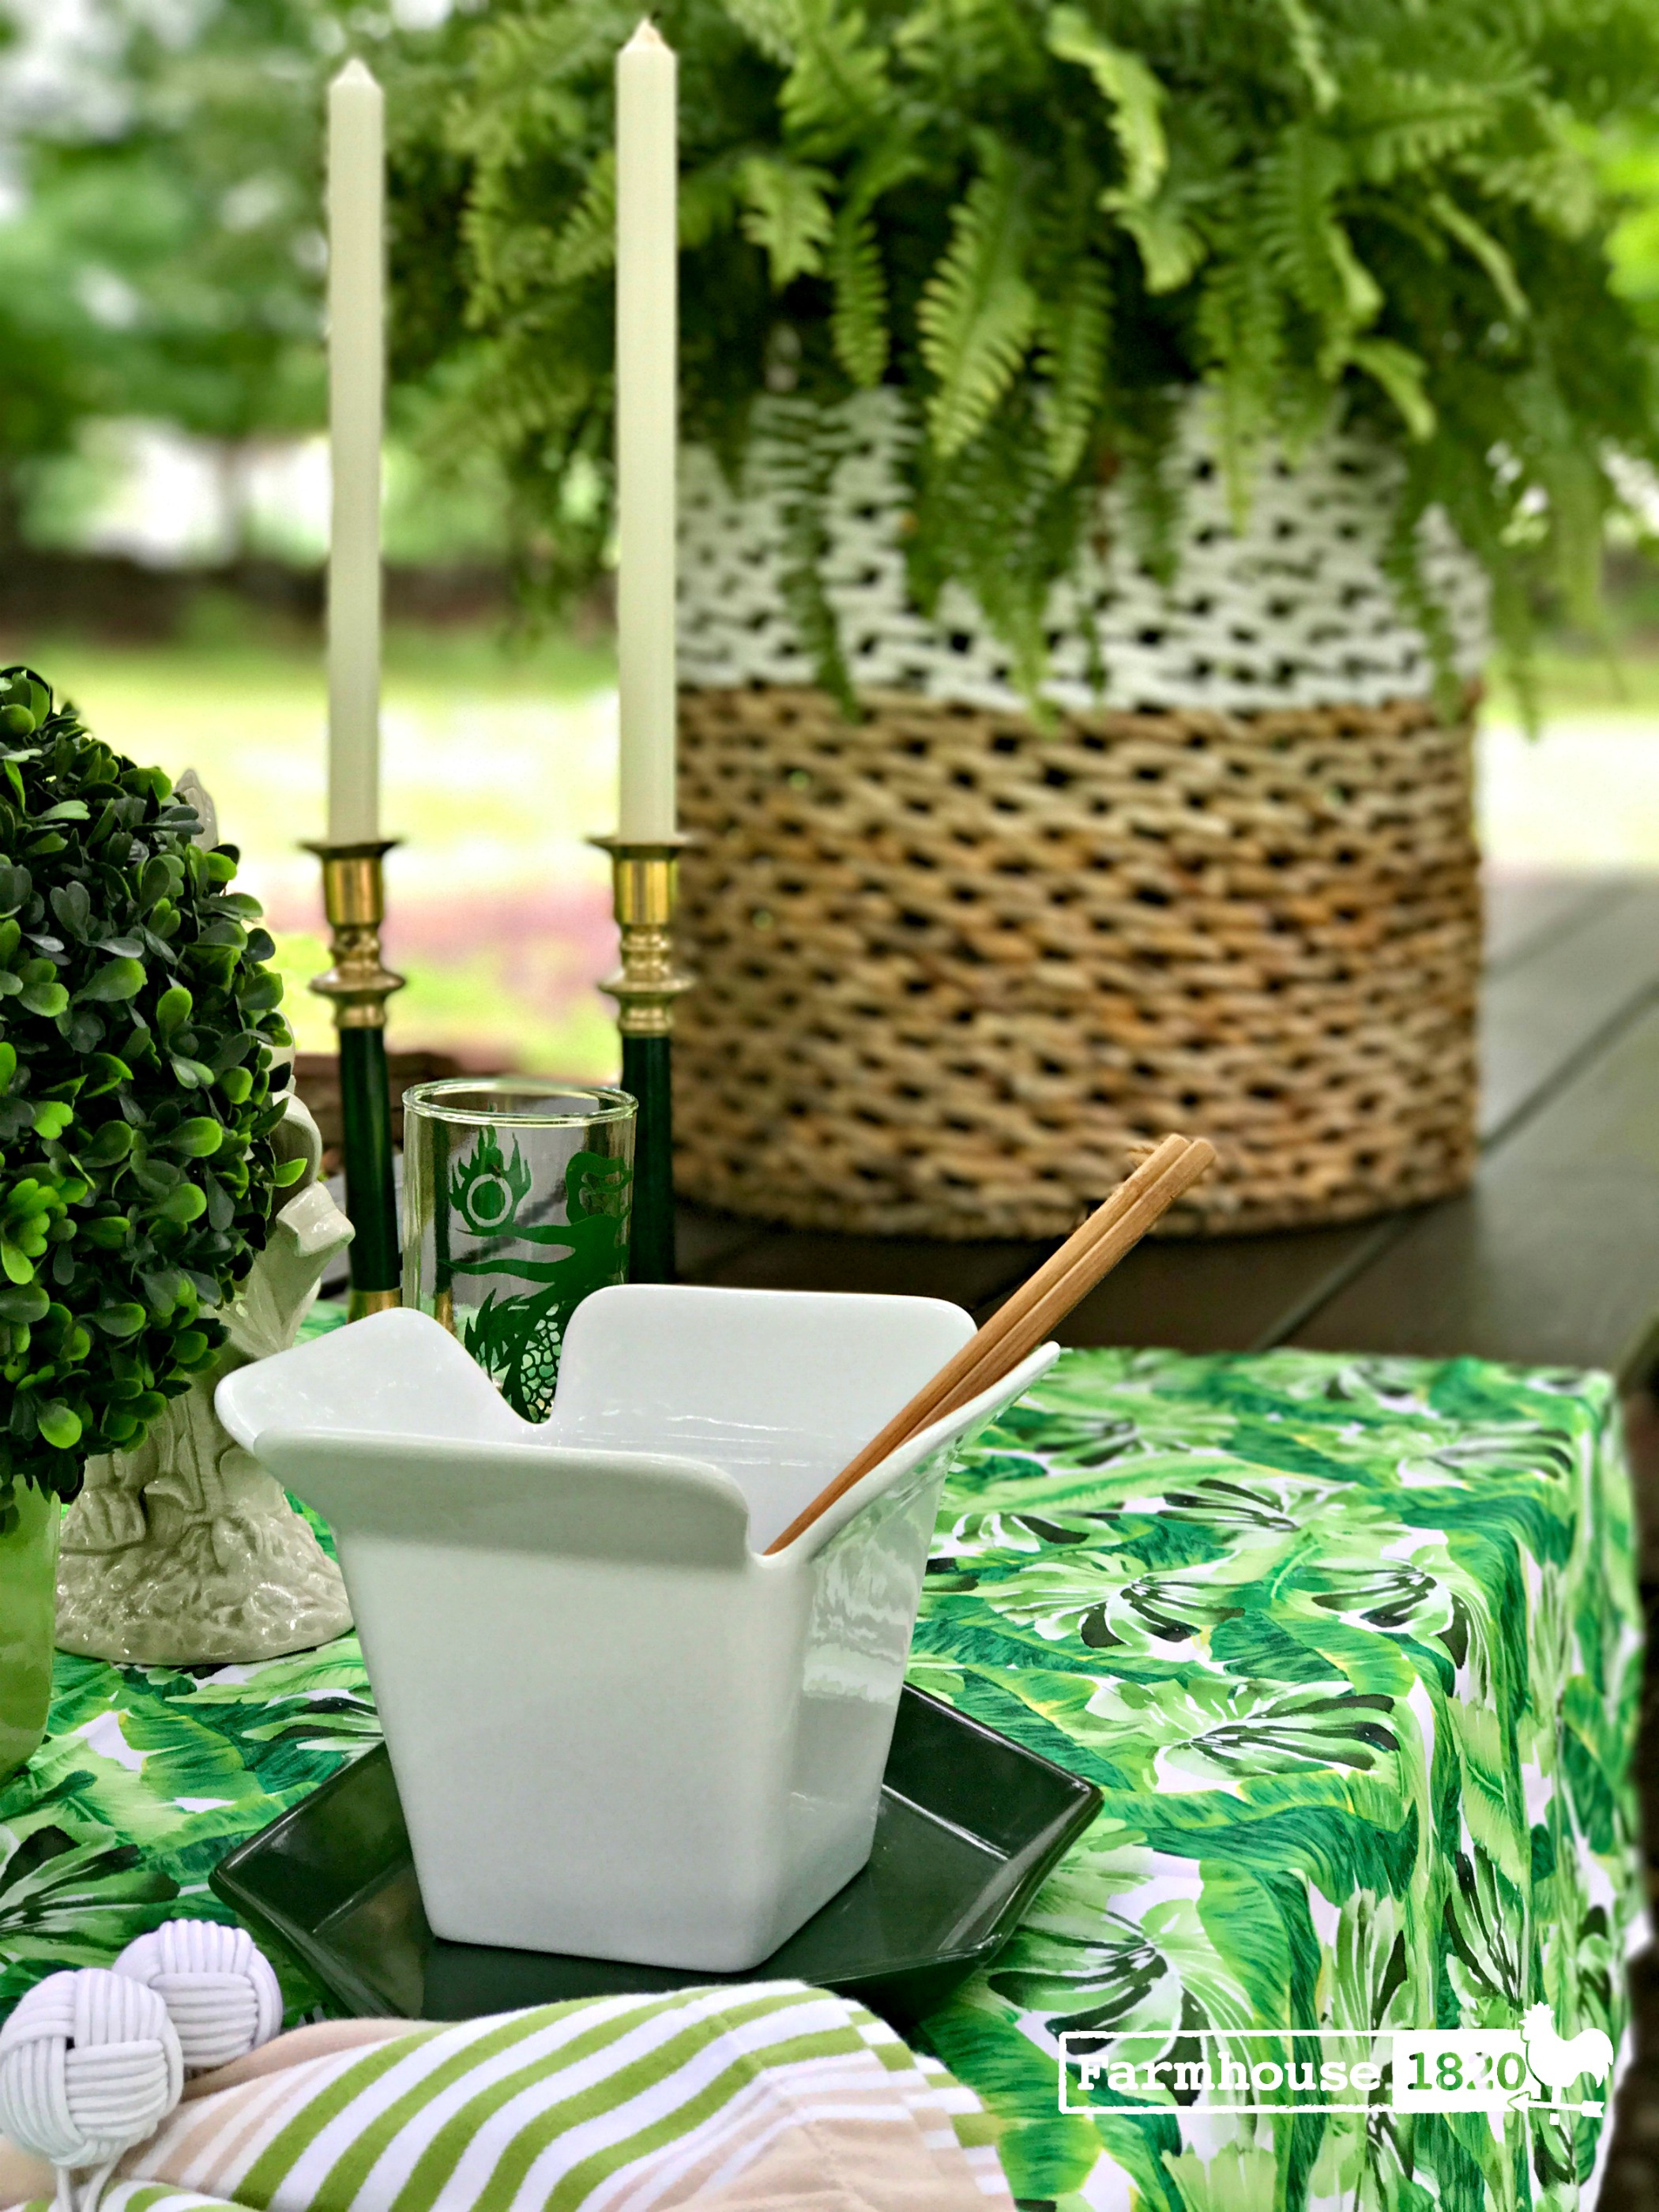 outdoor tablesetting - an elegant picnic table